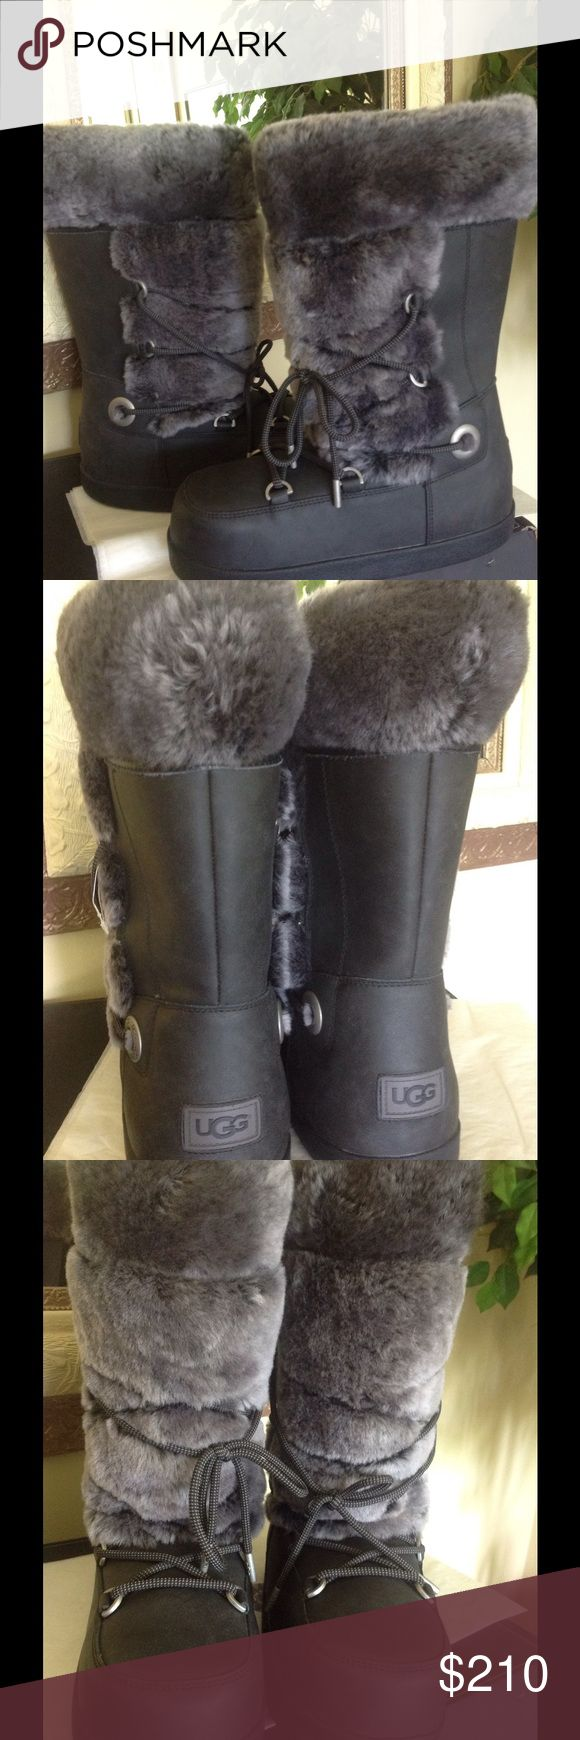 Details about women luxury diamond fashion snow boots rabbit fur boots - Ugg Australia Moon Boots Nwt